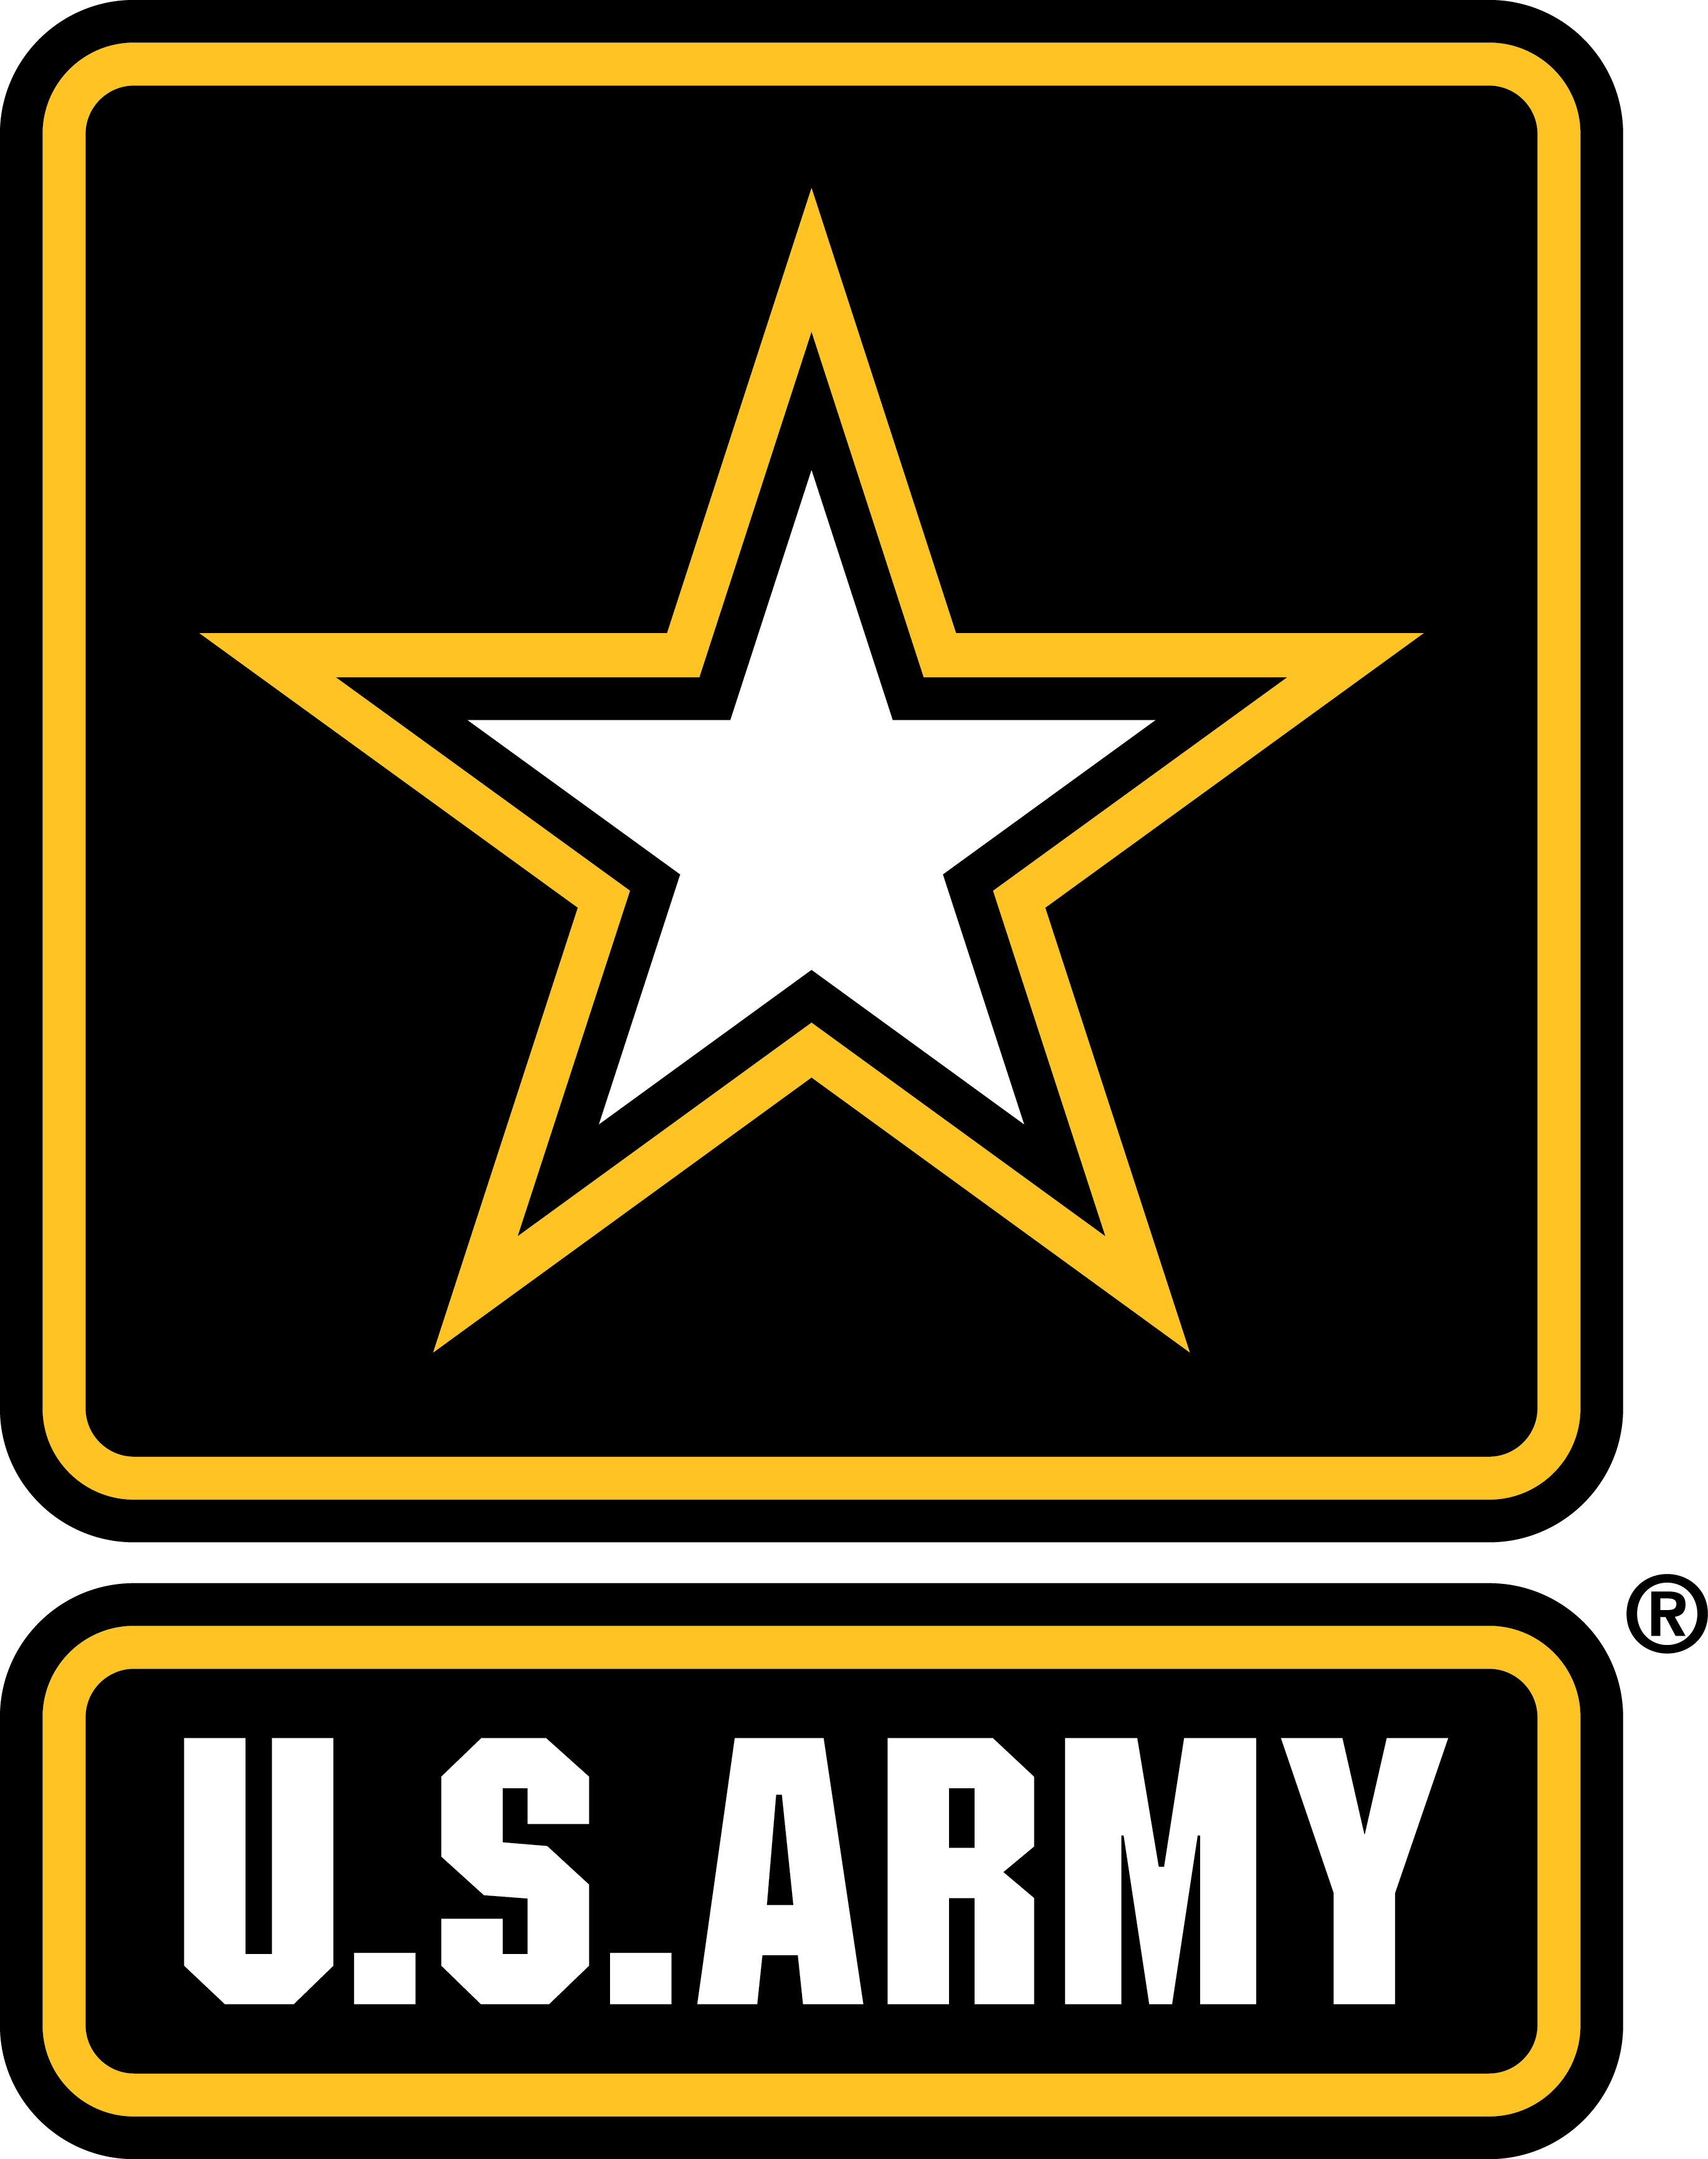 army_star_light_background